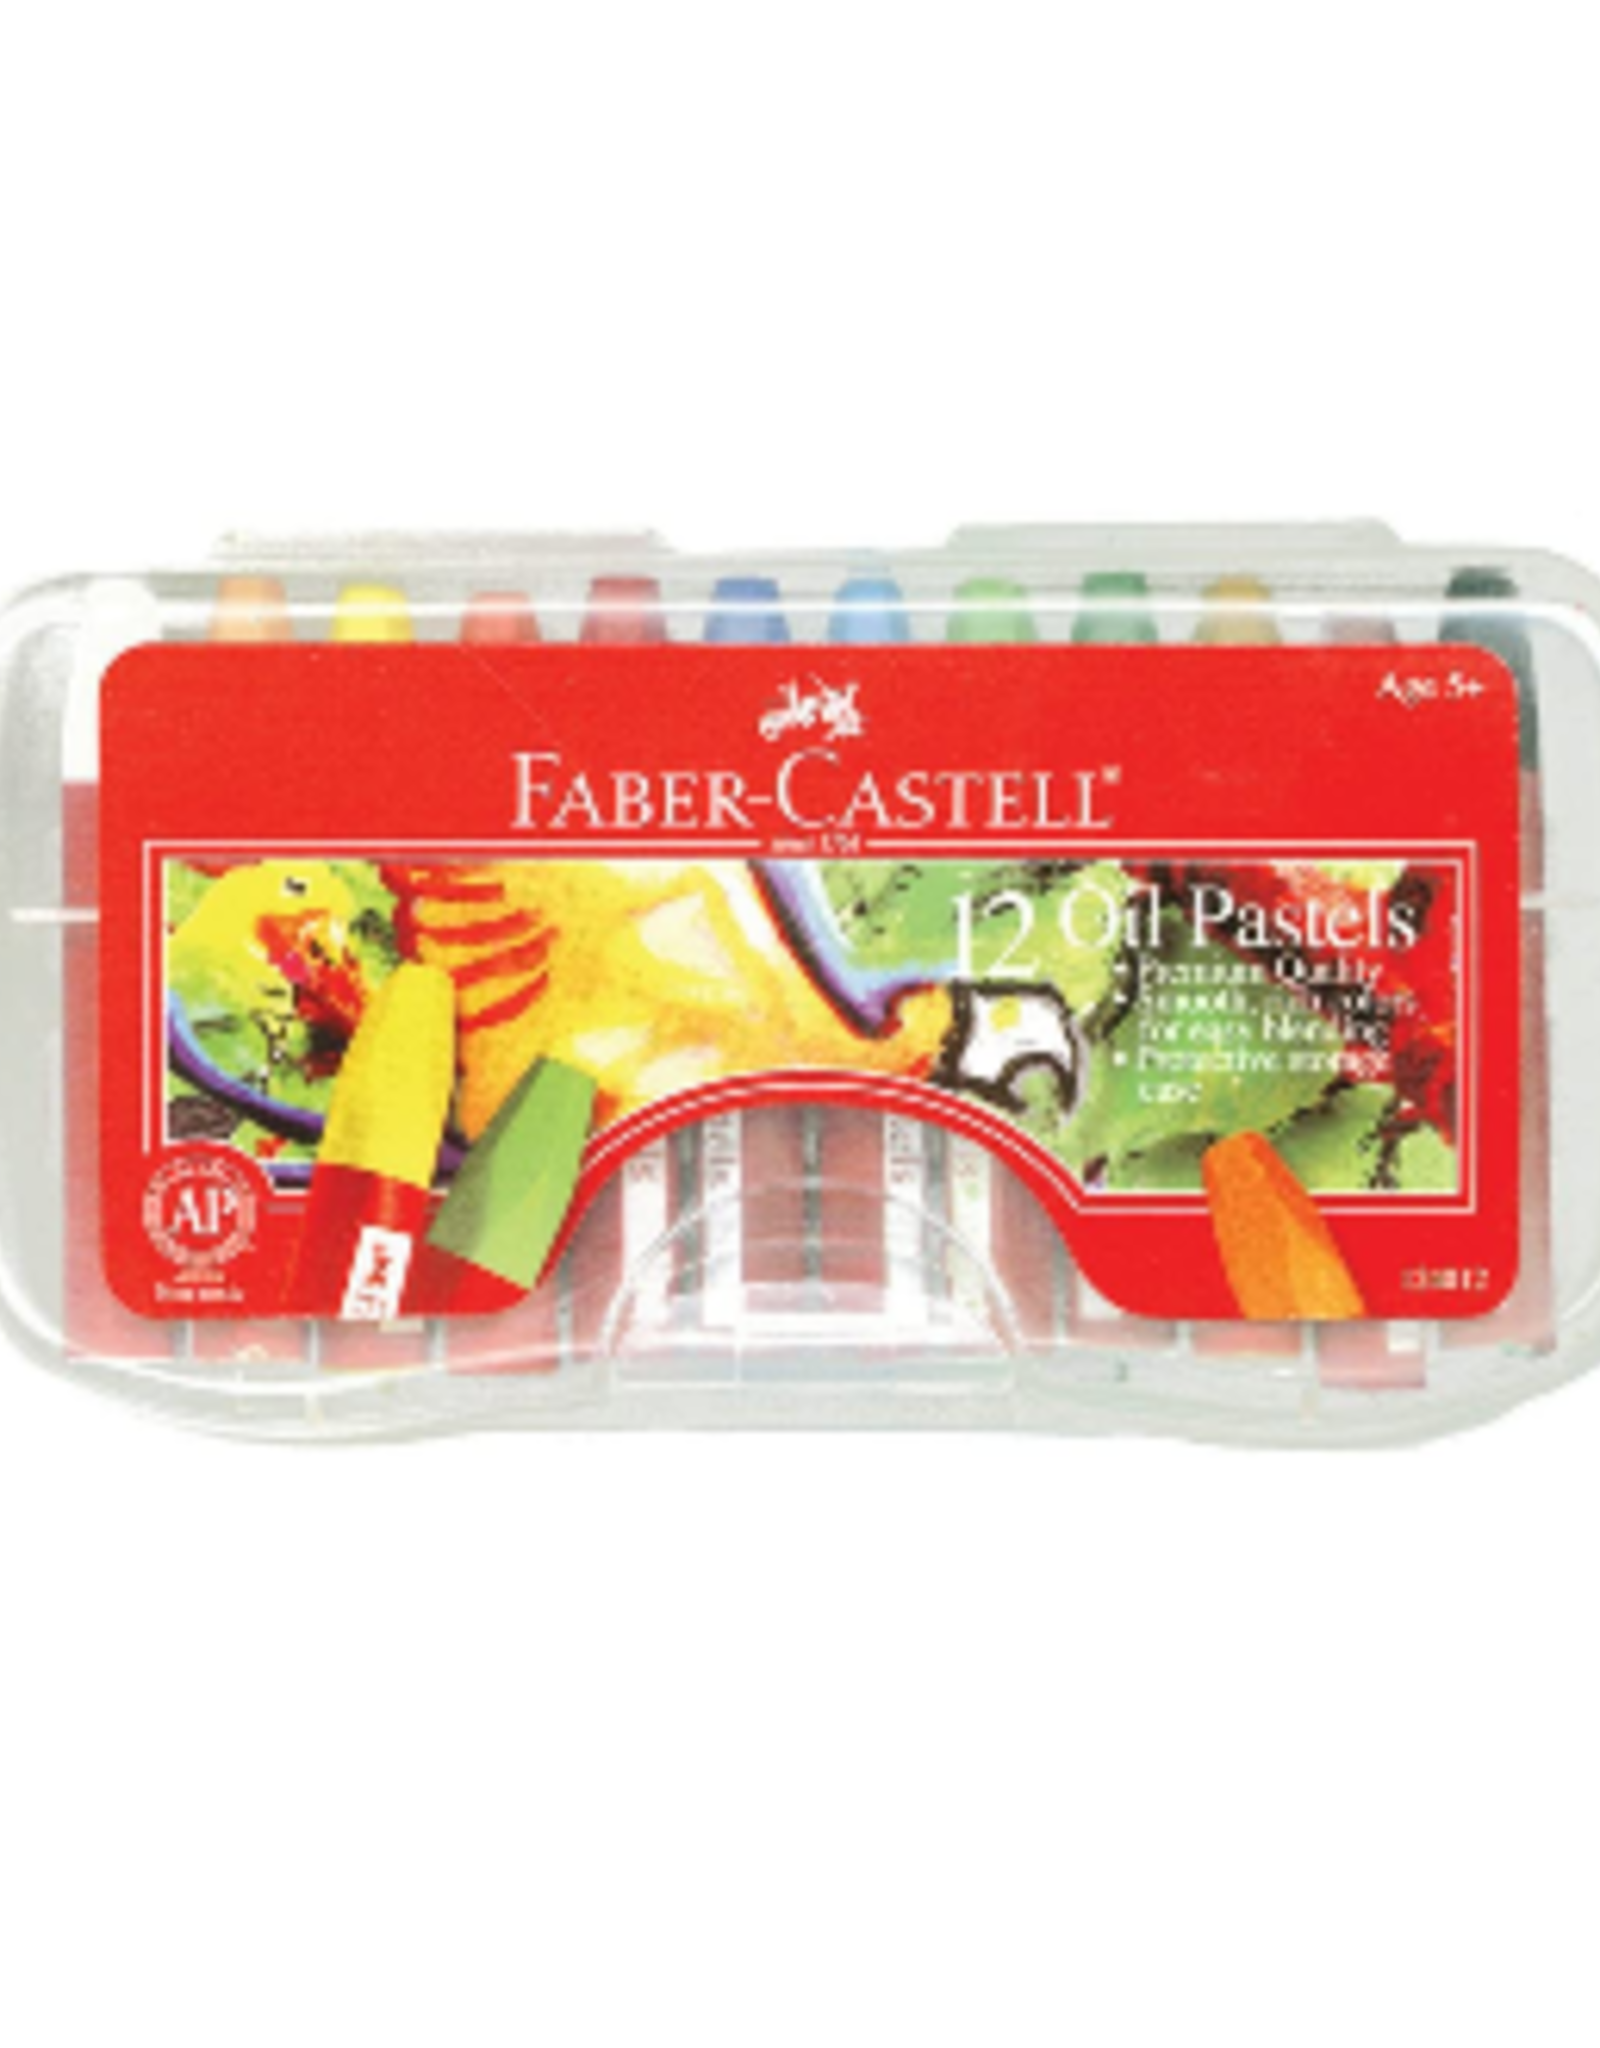 Faber-Castell 12ct Oil Pastel in Case